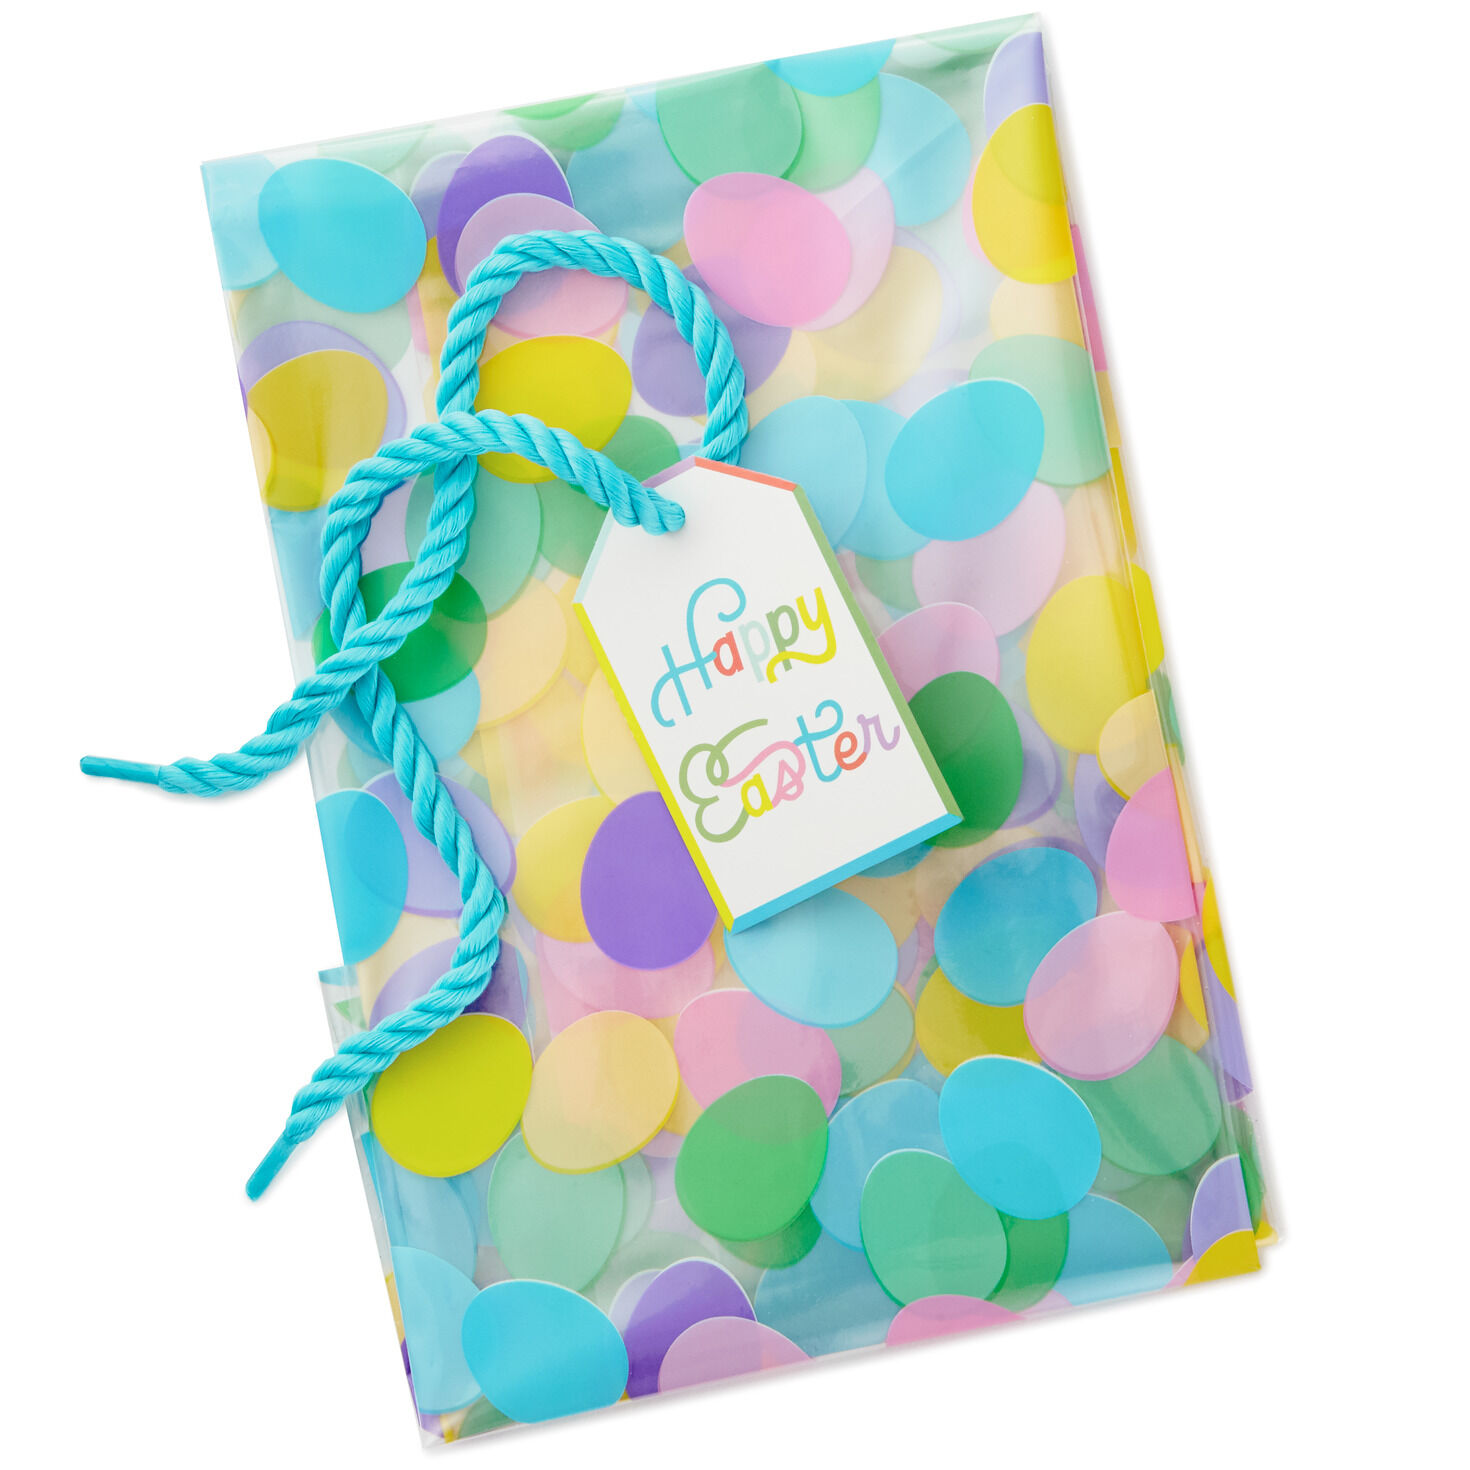 foil colours with string 2 packs 40 tag 2 x 20 luxury foil gift tags 6 assorted